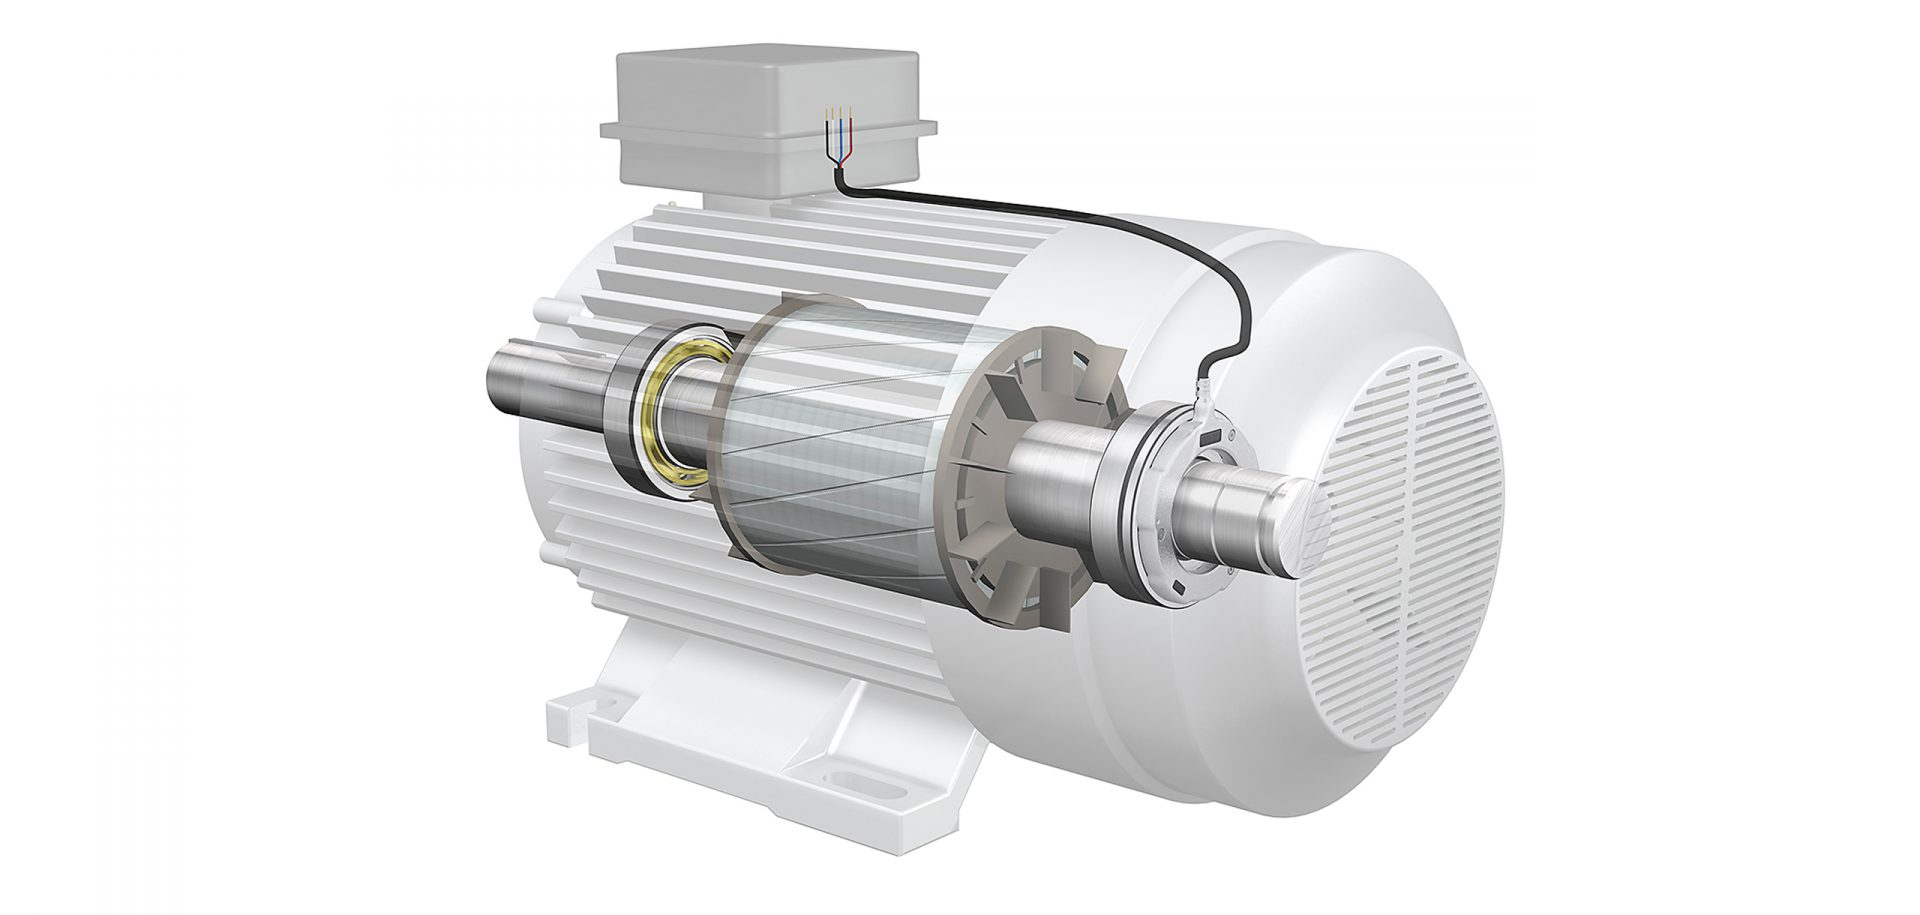 hight resolution of reliable motor control with newest generation skf sensor bearings